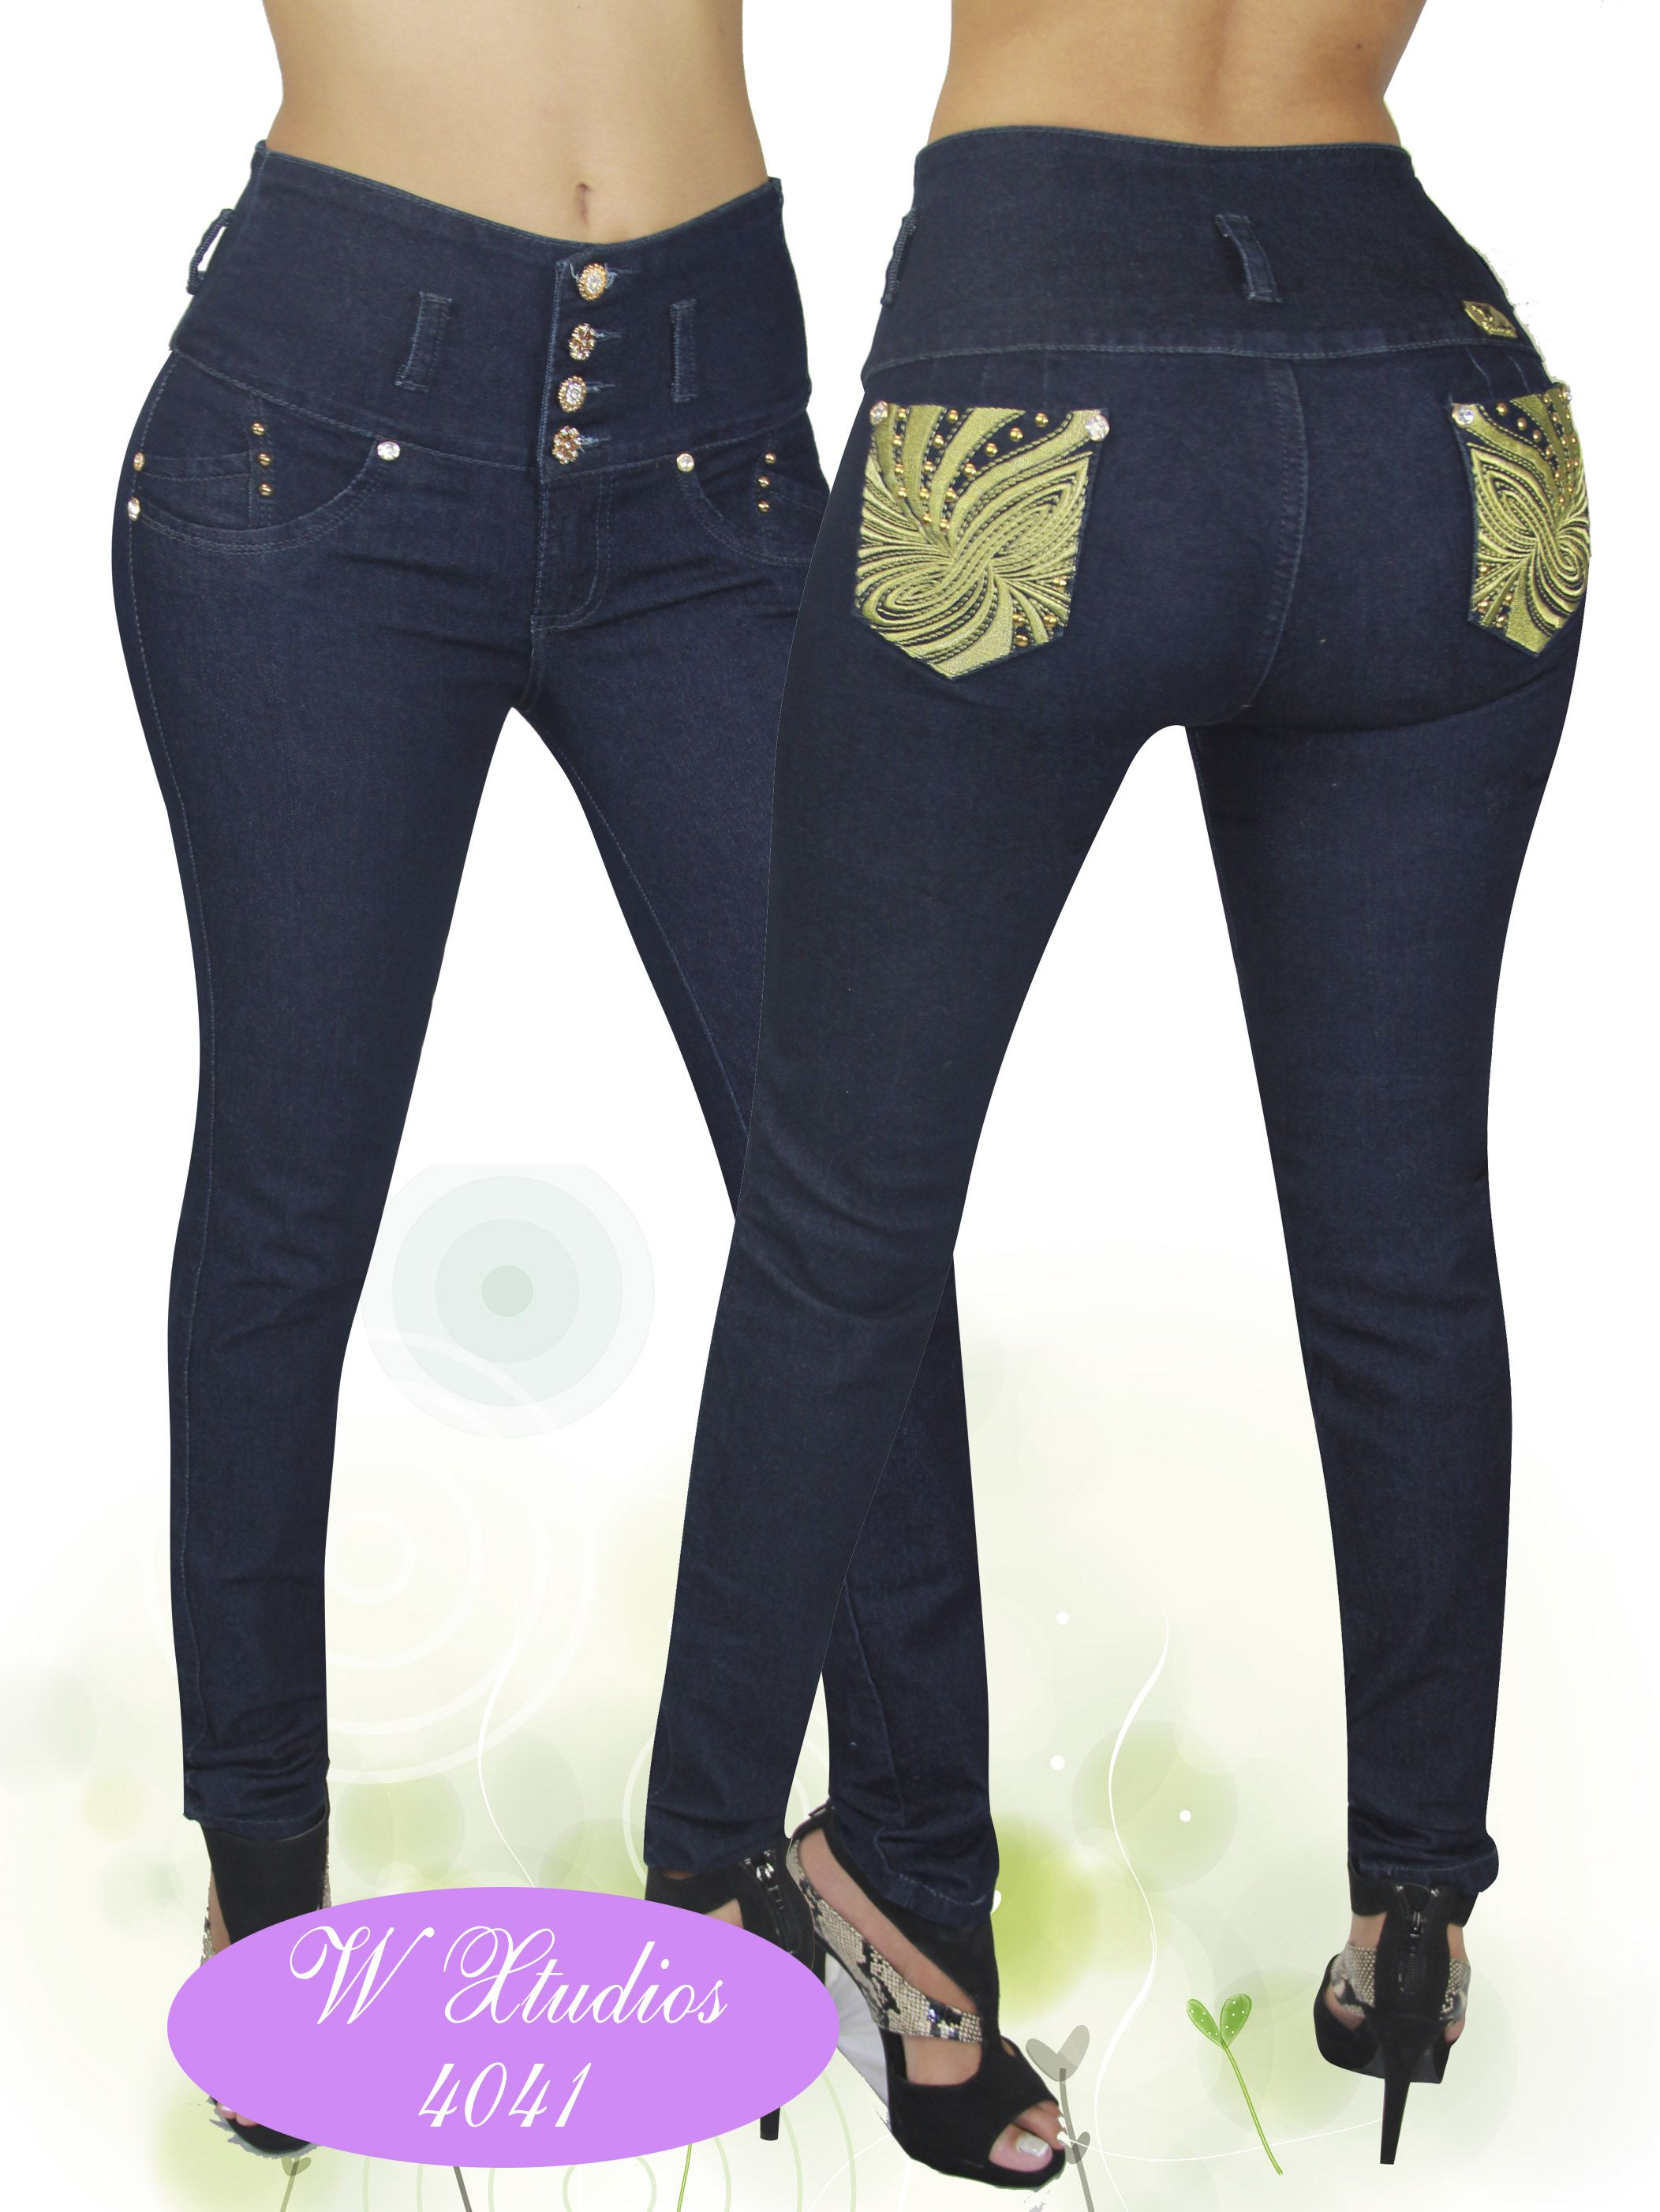 5524d2d967d3 Wxtudio Jeans available for retail and wholesale at www.asamoda.com special  prices for whole buyers